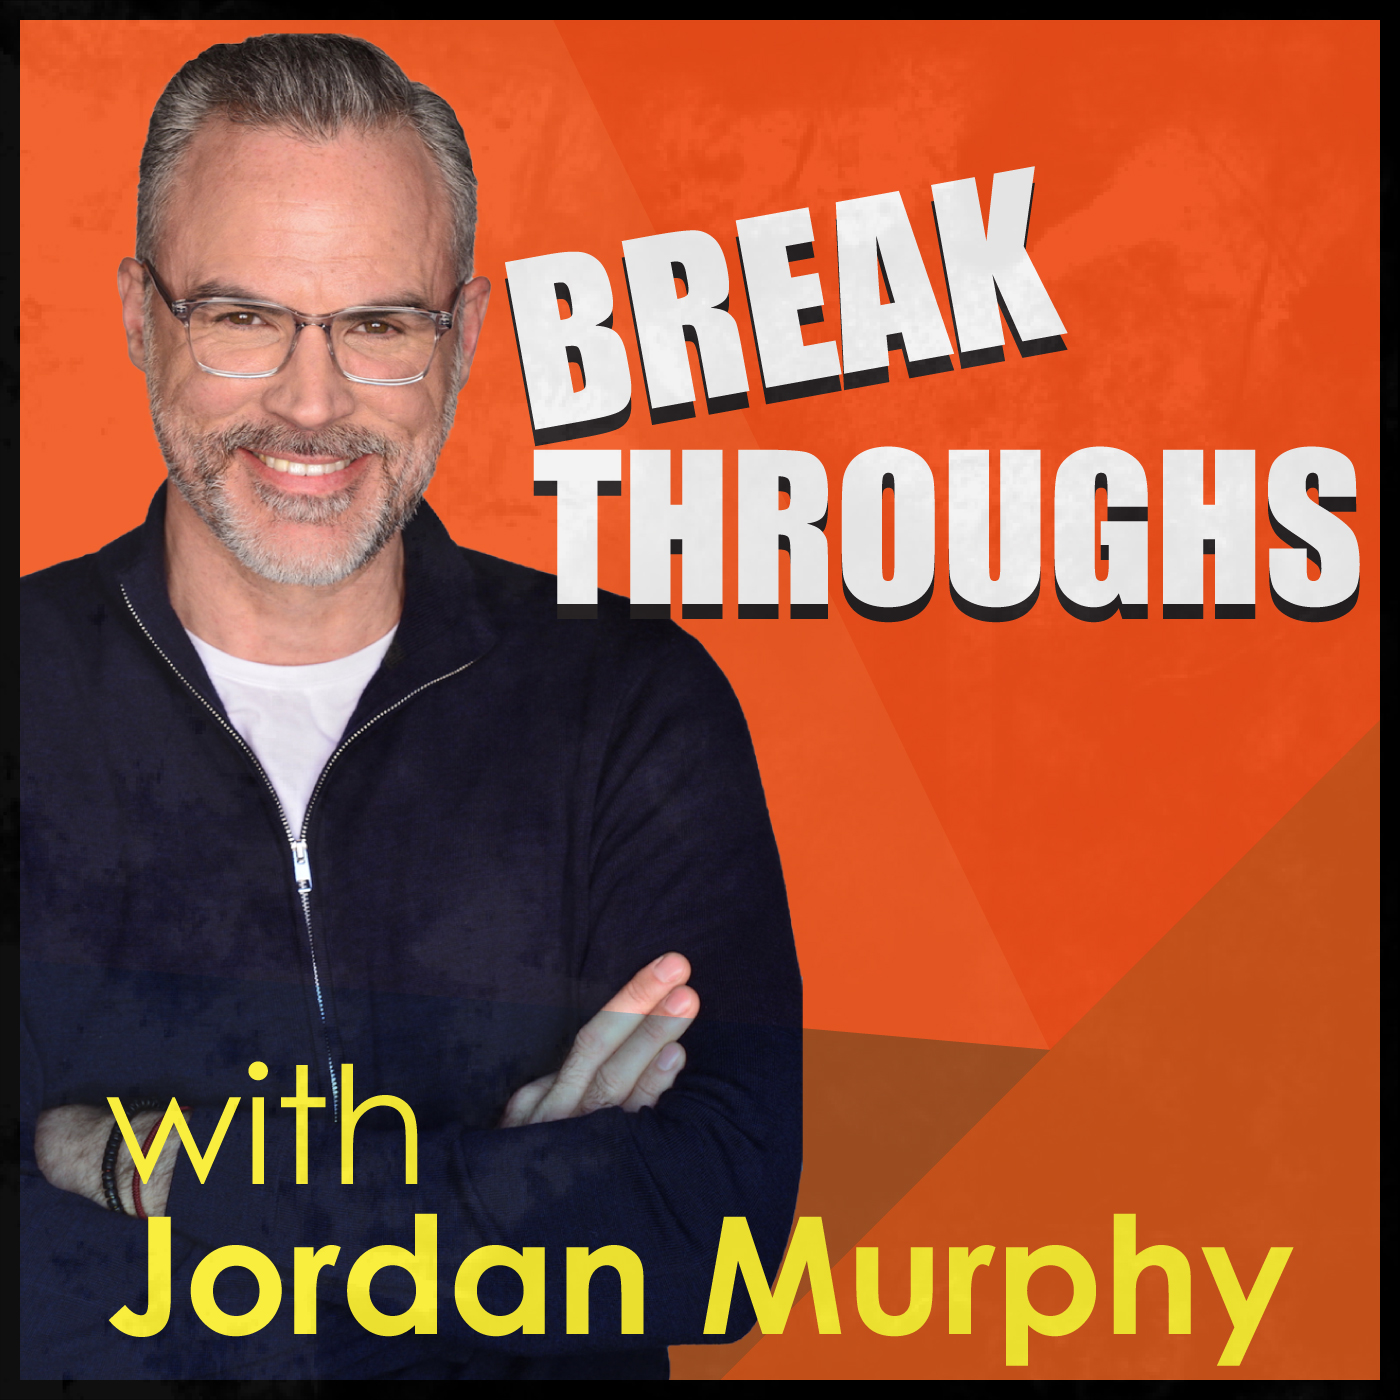 jordanmurphy600-PODCAST-ARTWORK_updated.jpg